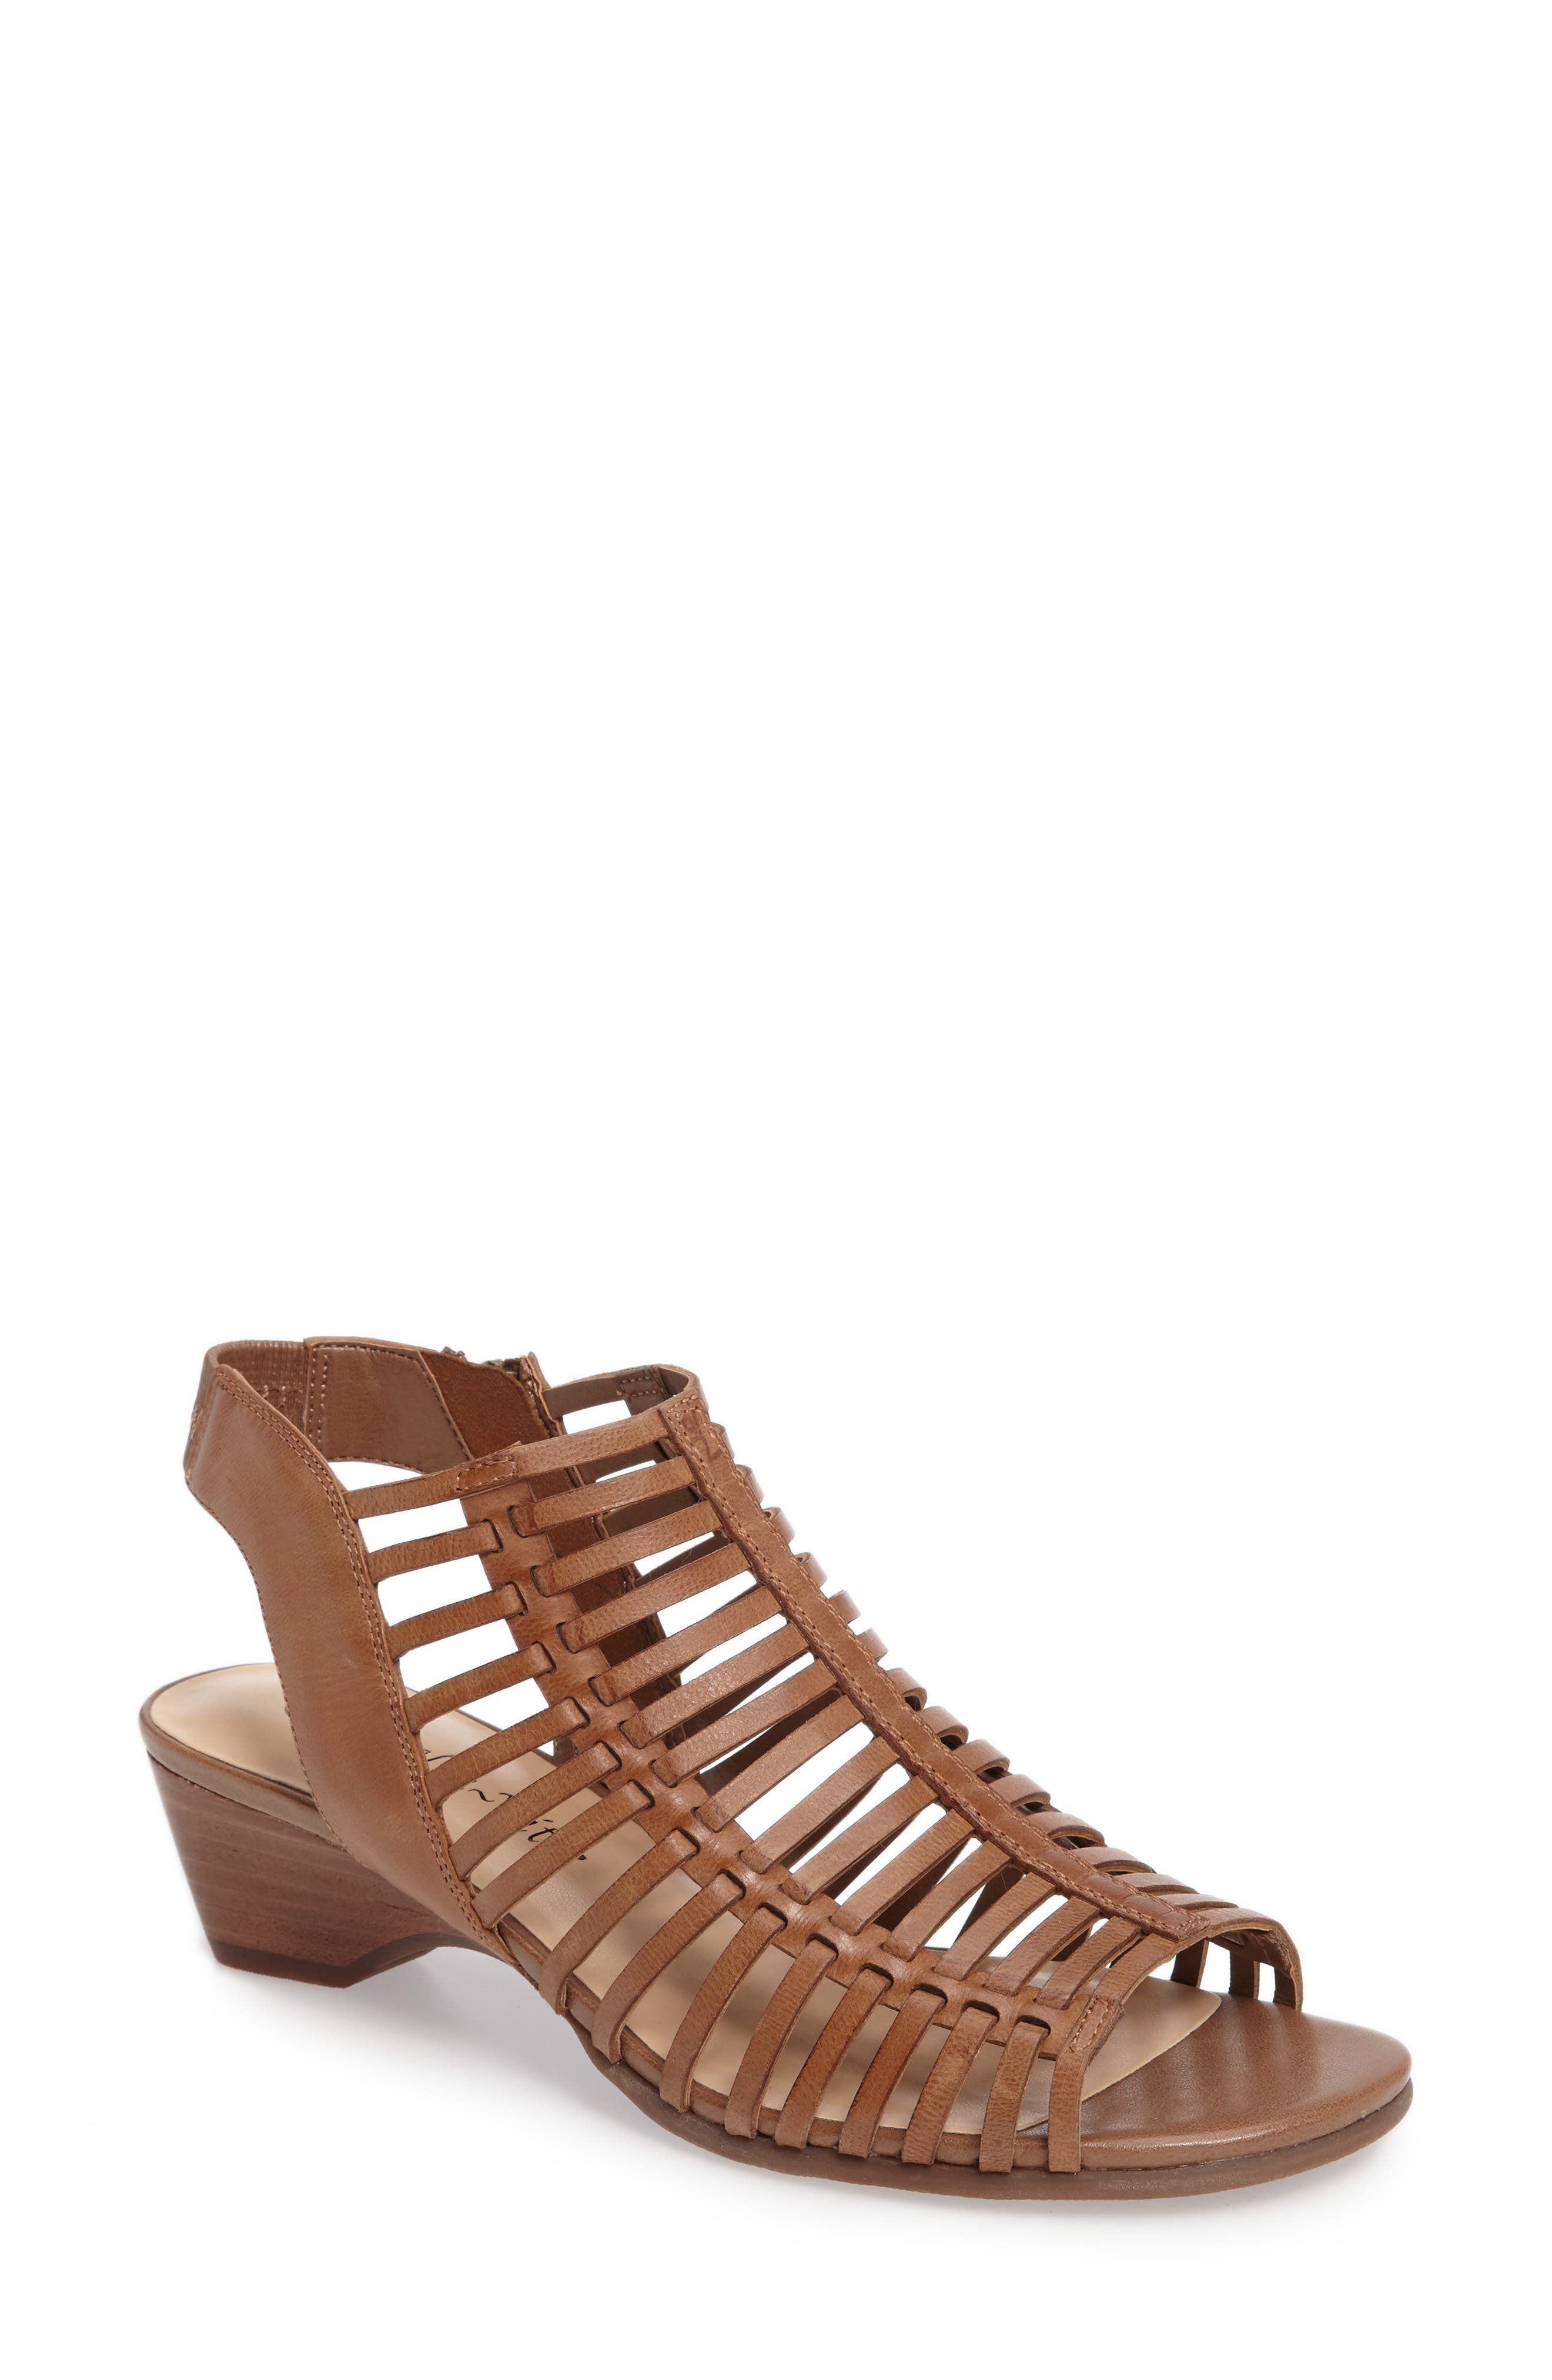 BELLA VITA, Pacey Cage Sandal, Main thumbnail 1, color, CAMEL LEATHER